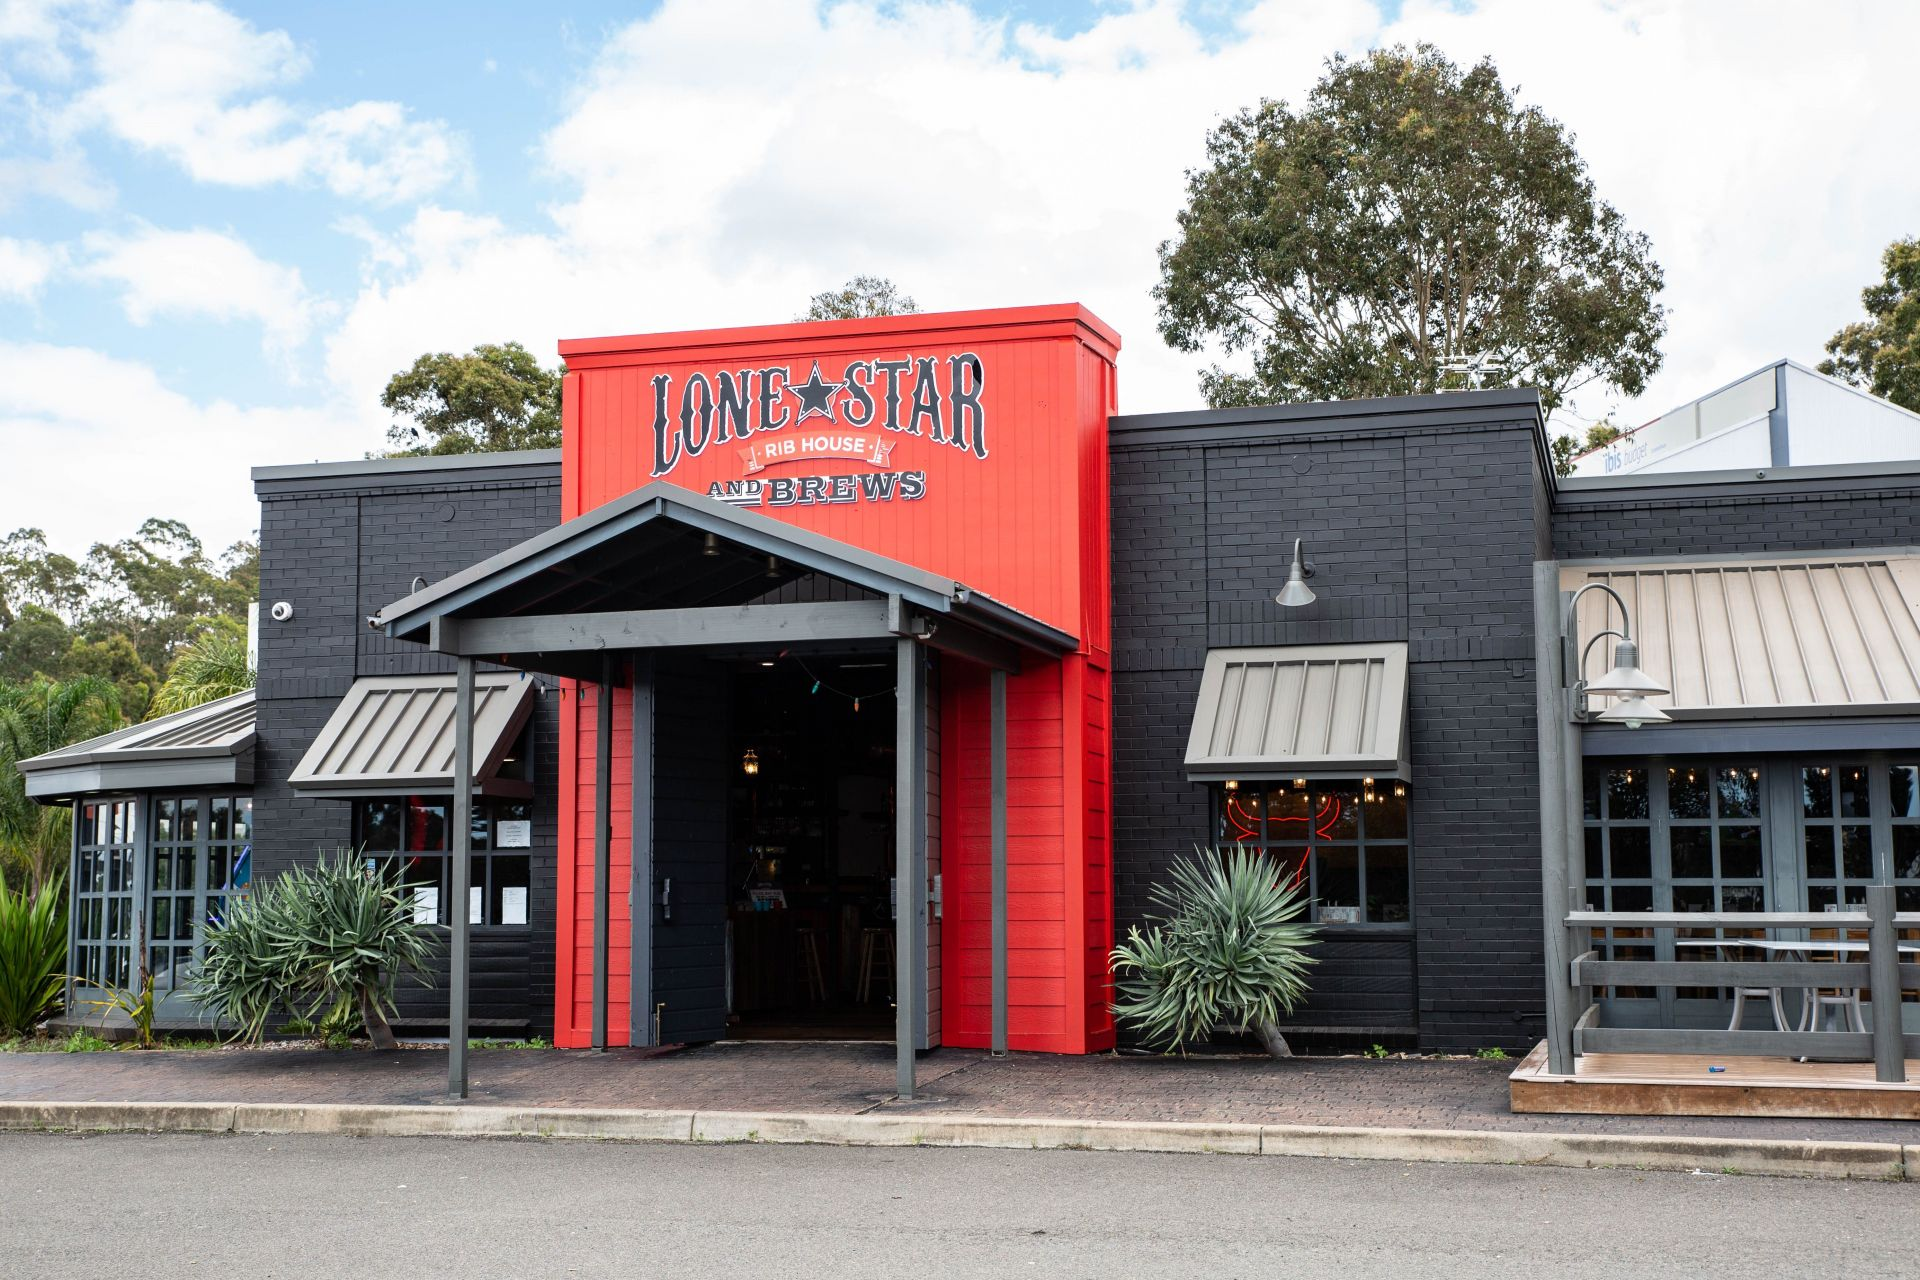 Lone Star Rib House launches new business model | Inside Franchise Business